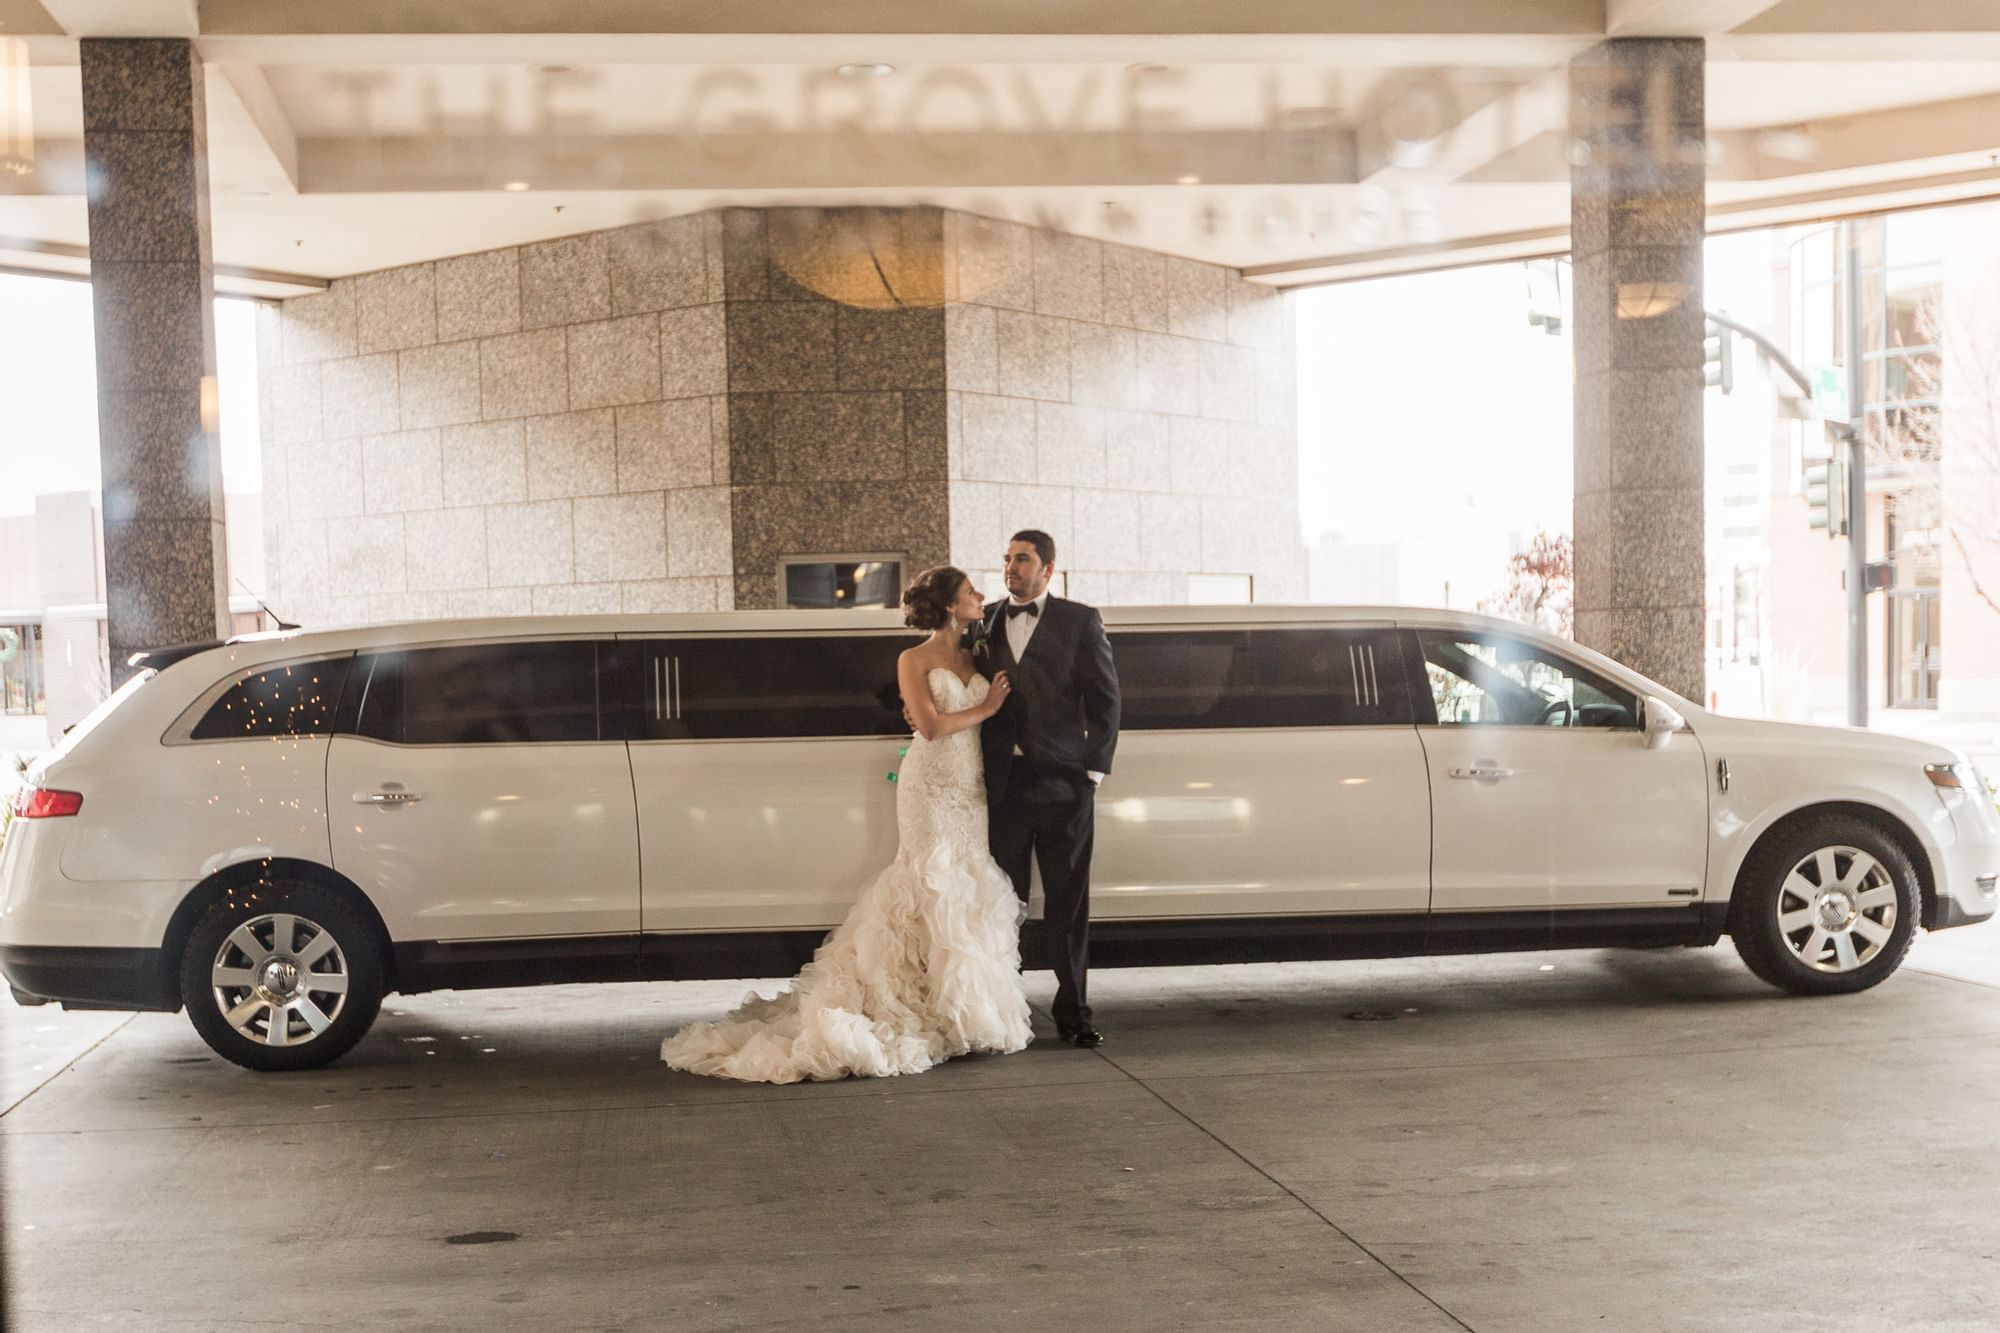 a bride and groom in front of a limo